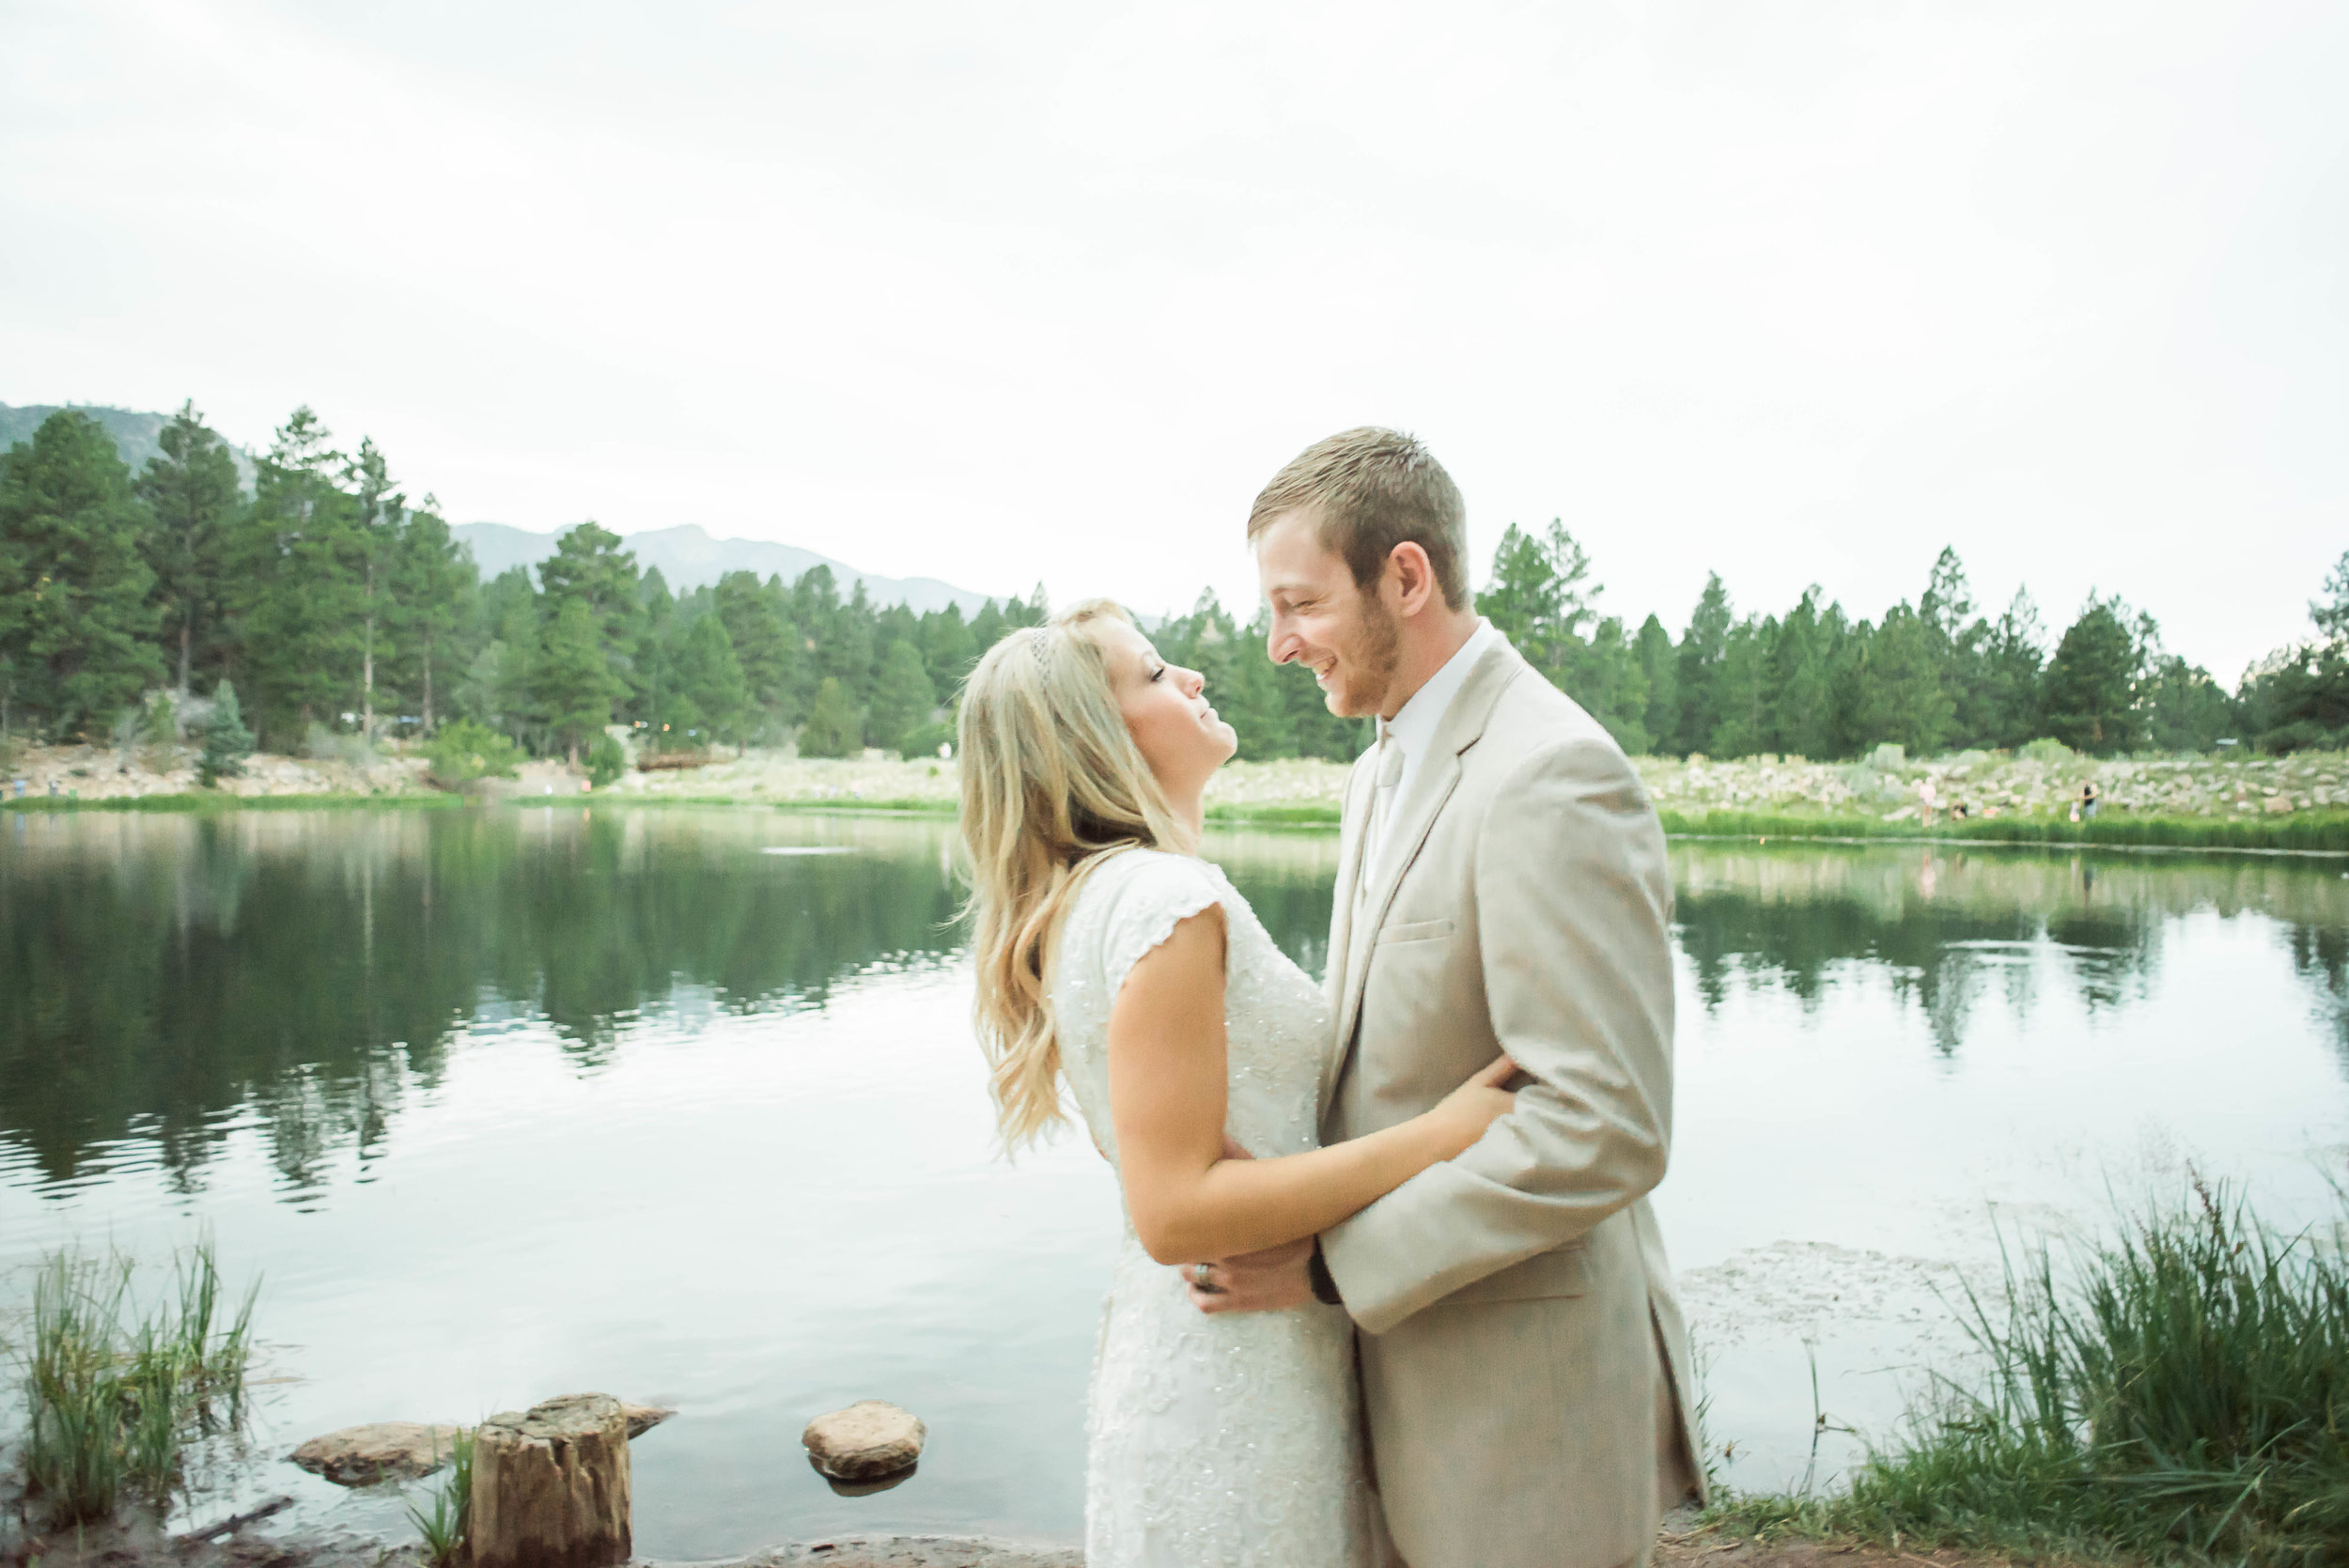 DANIEL+LACI-Sadie_Banks_Photography-131.jpg